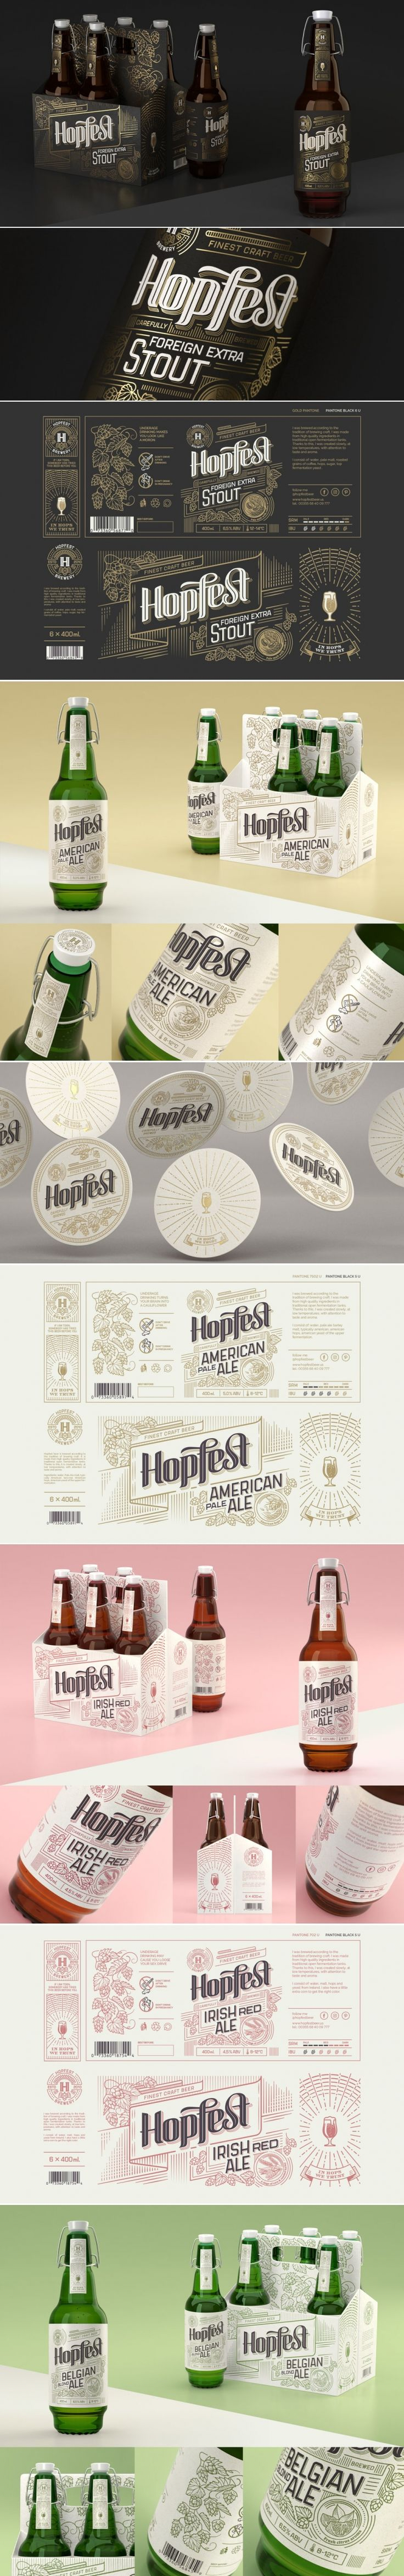 This Conceptual Craft Beer Packaging Comes With Beautiful Intricate Illustrations — The Dieline | Packaging & Branding Design & Innovation News